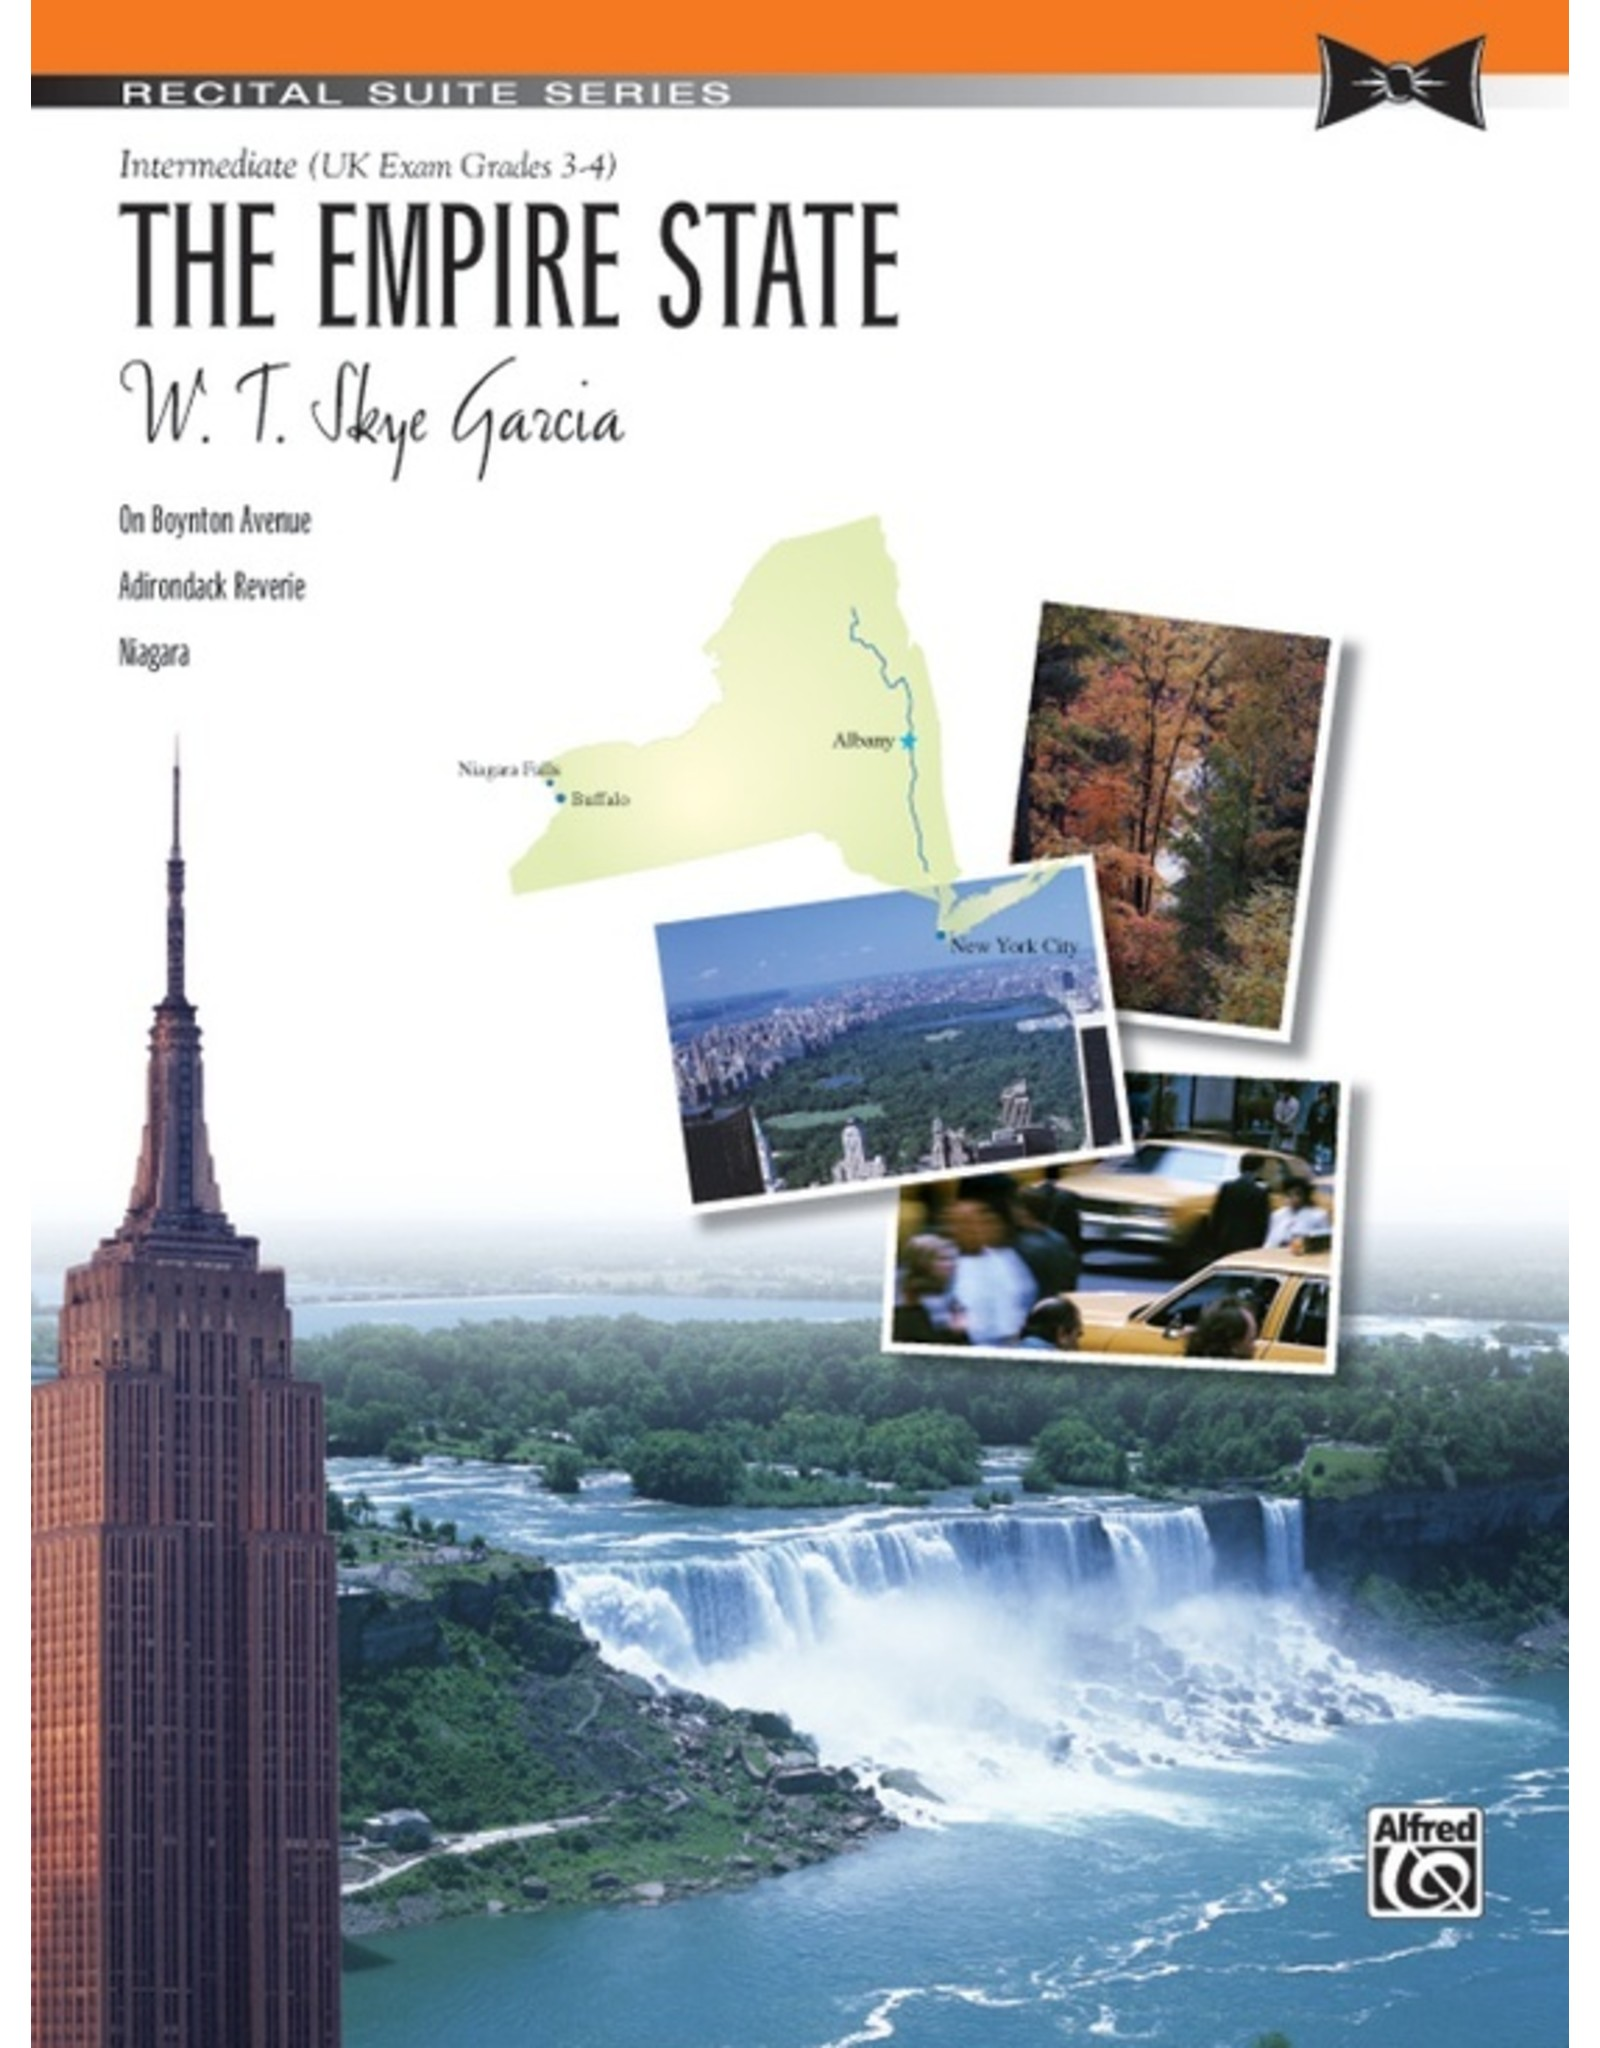 Alfred Garcia - The Empire State